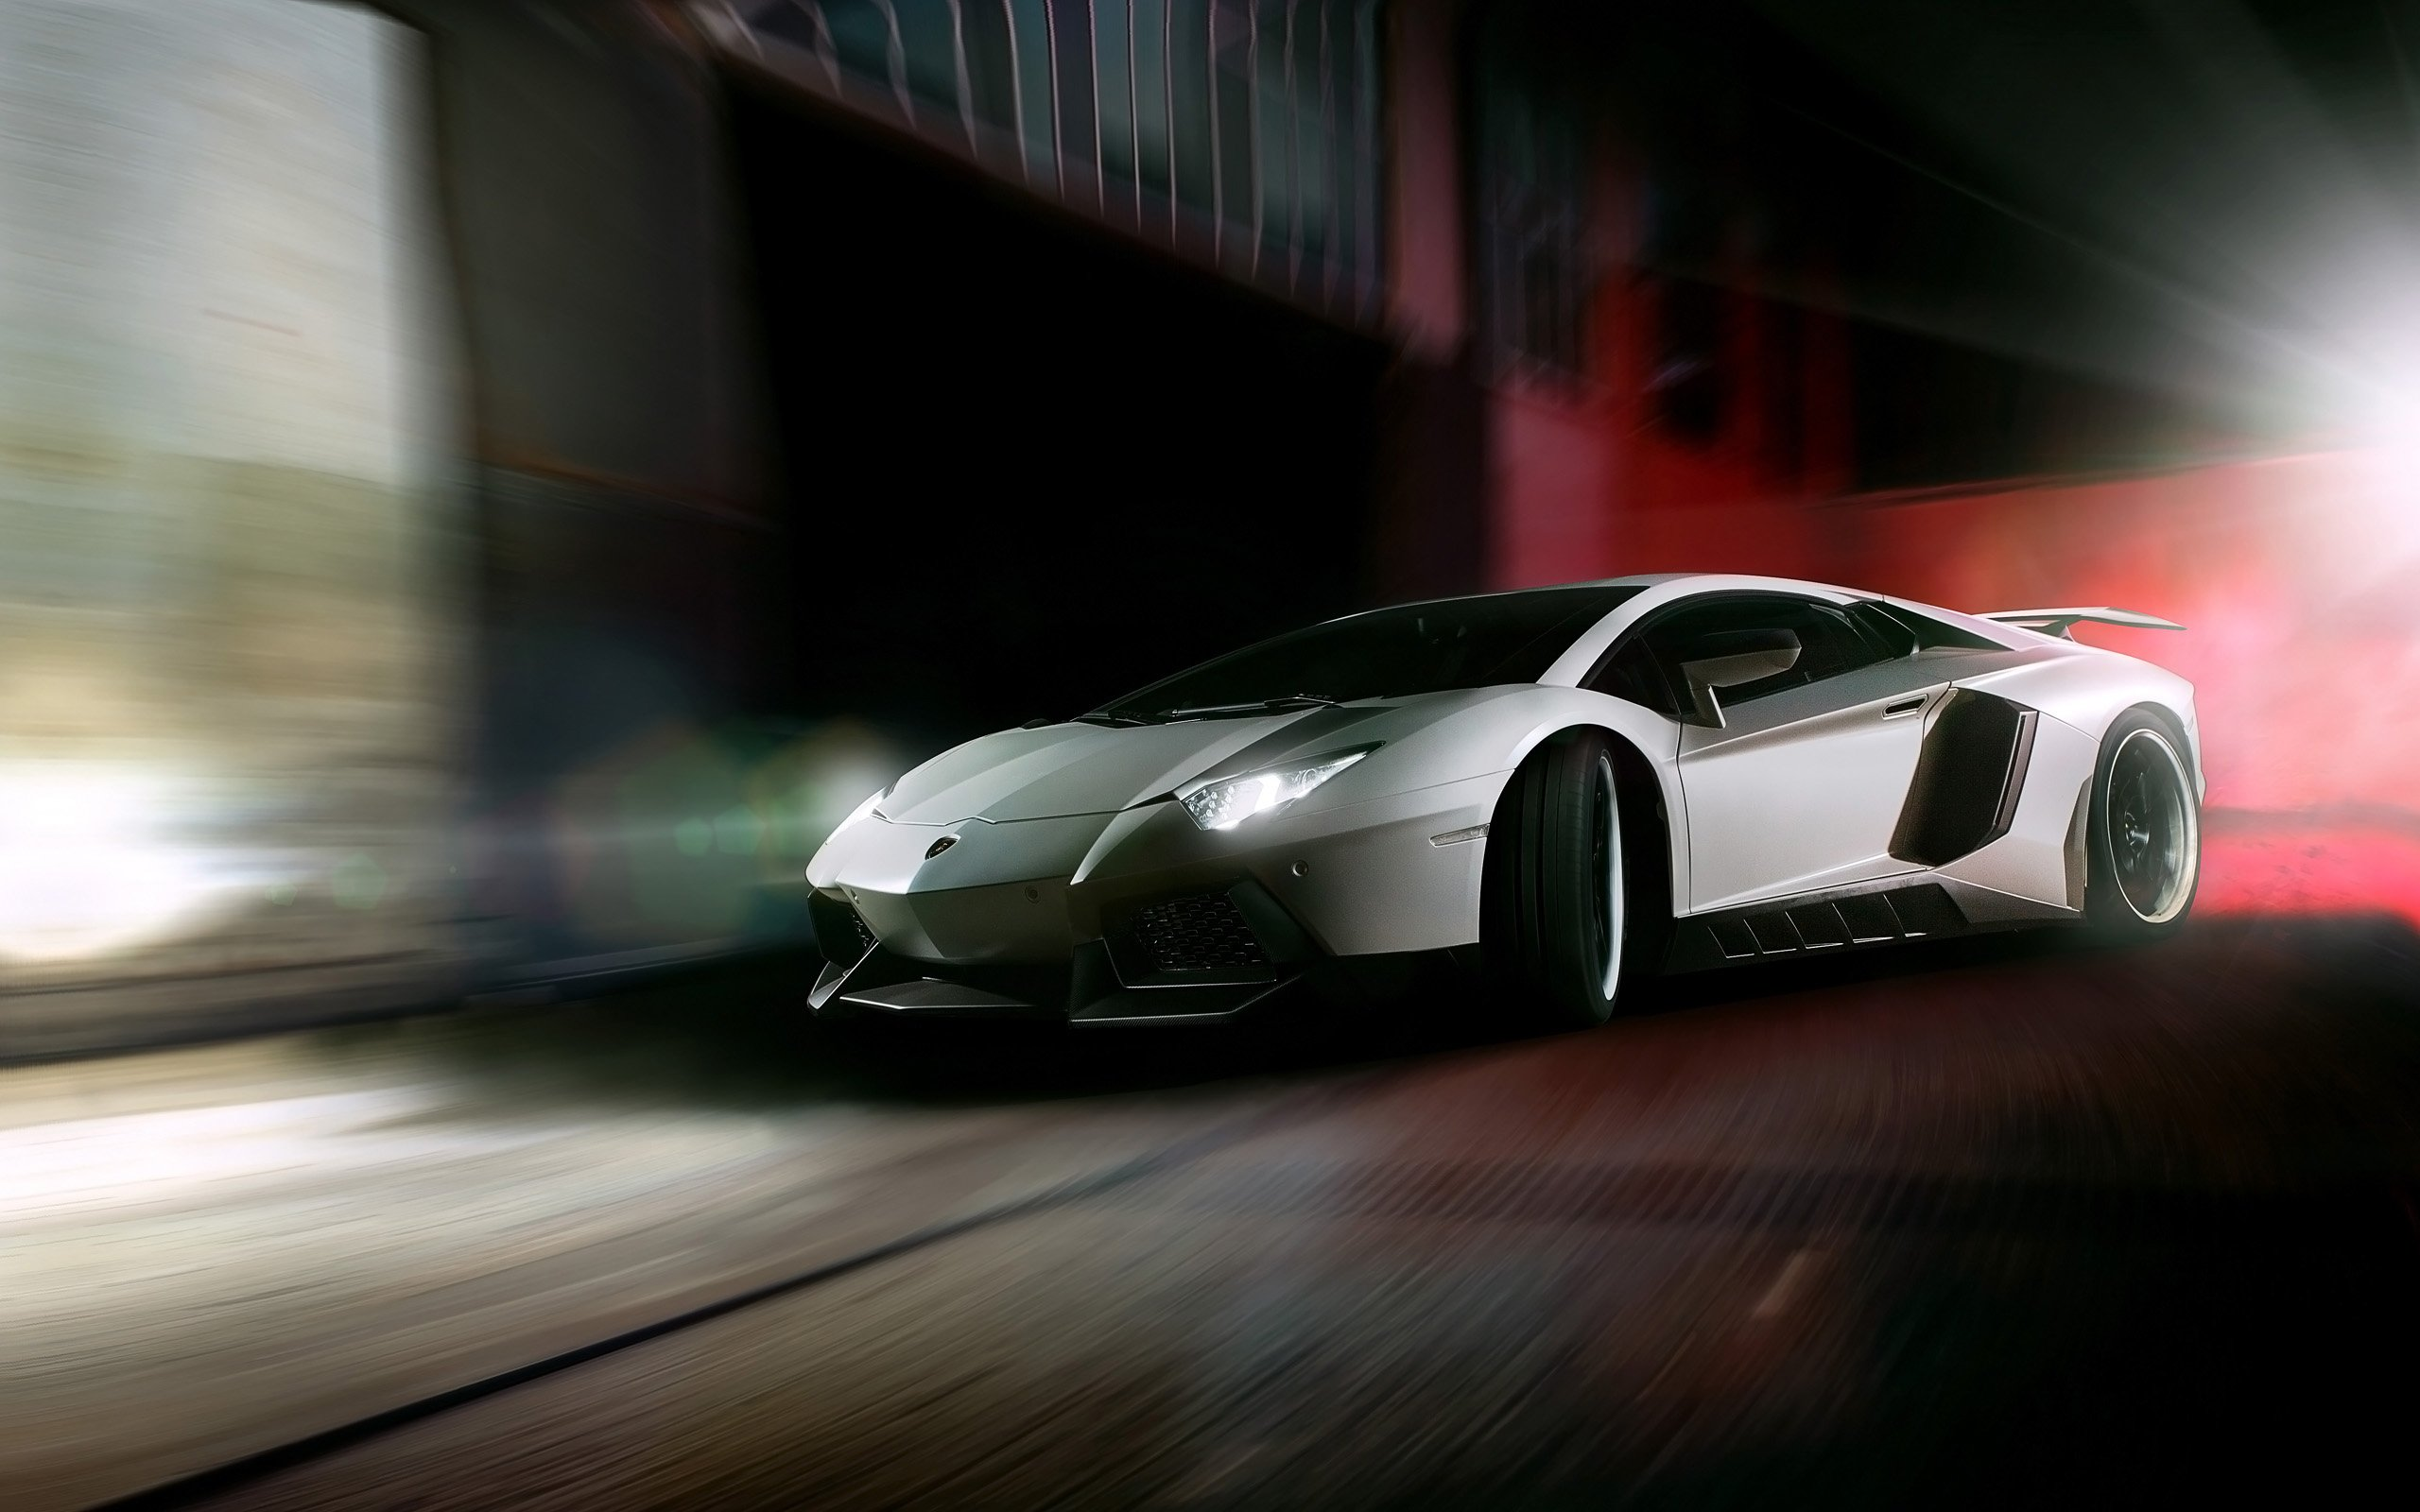 Lamborghini Aventador By Novitec Torado Wallpapers HD Wallpapers 2560x1600